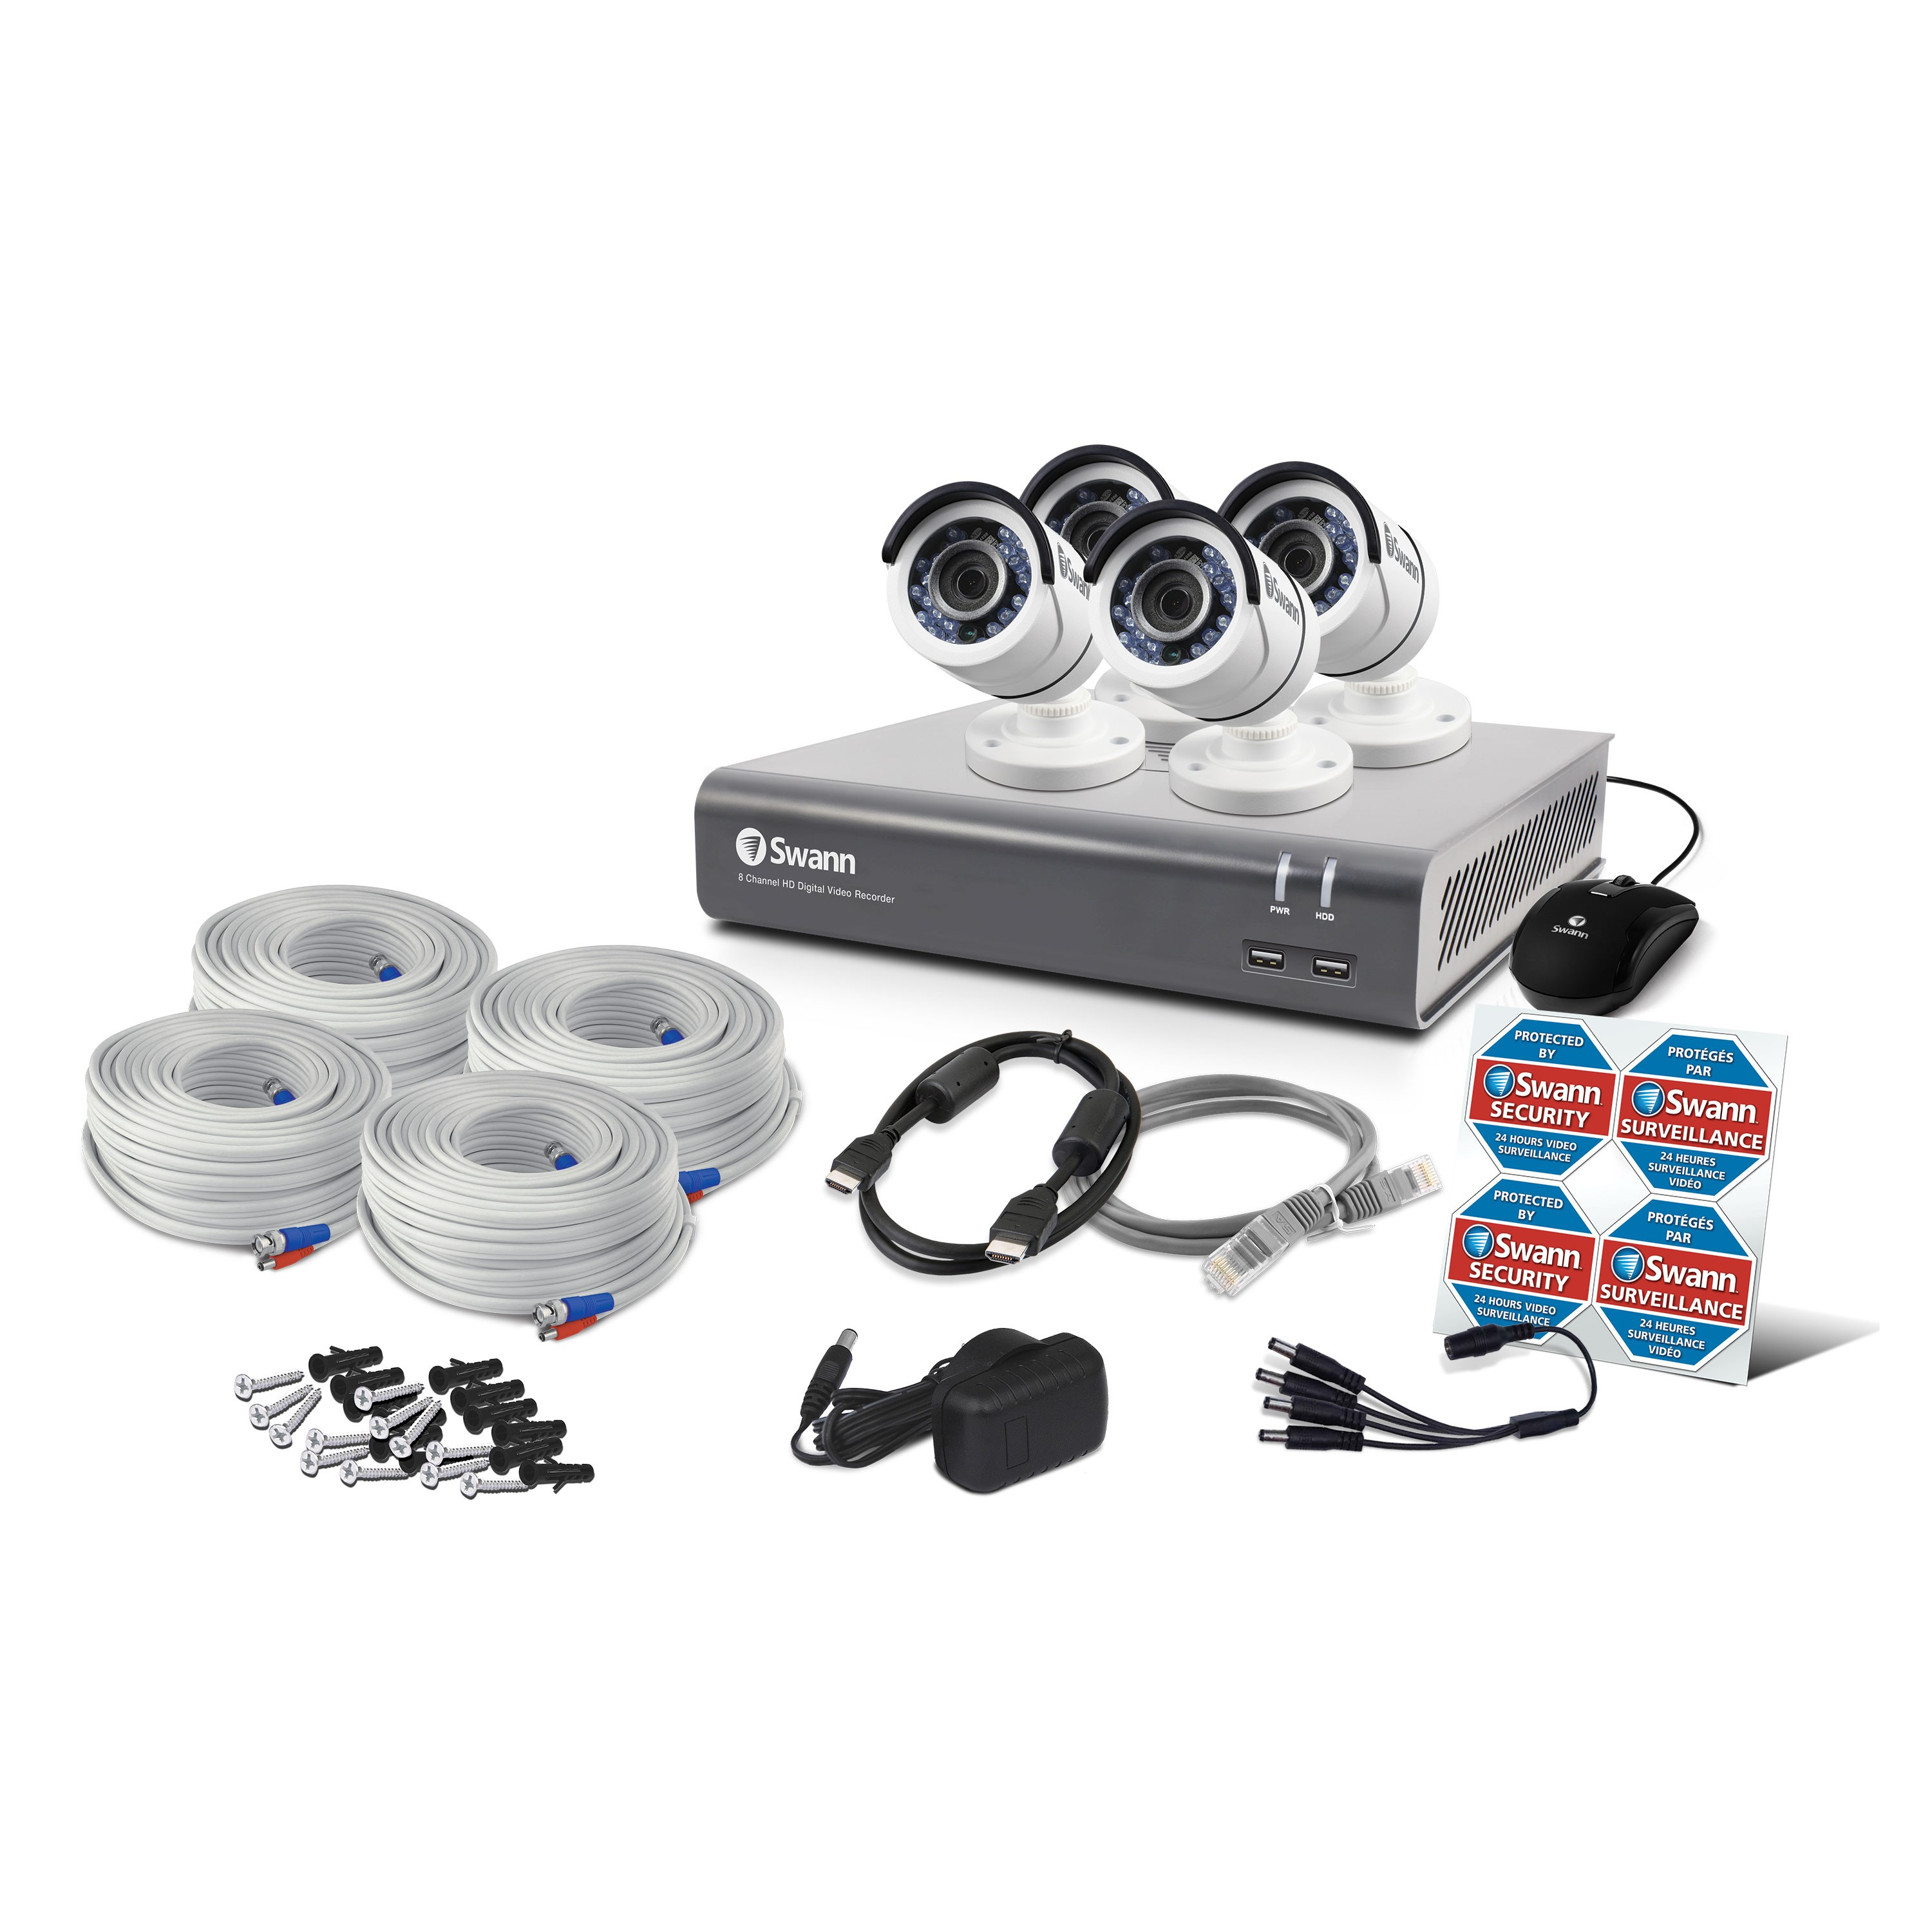 Swann 8 Channel Security System 1080p Full Hd Dvr 4575 With 1tb Hdd Whole House Cable Wiring 4 X Pro T853 Canada